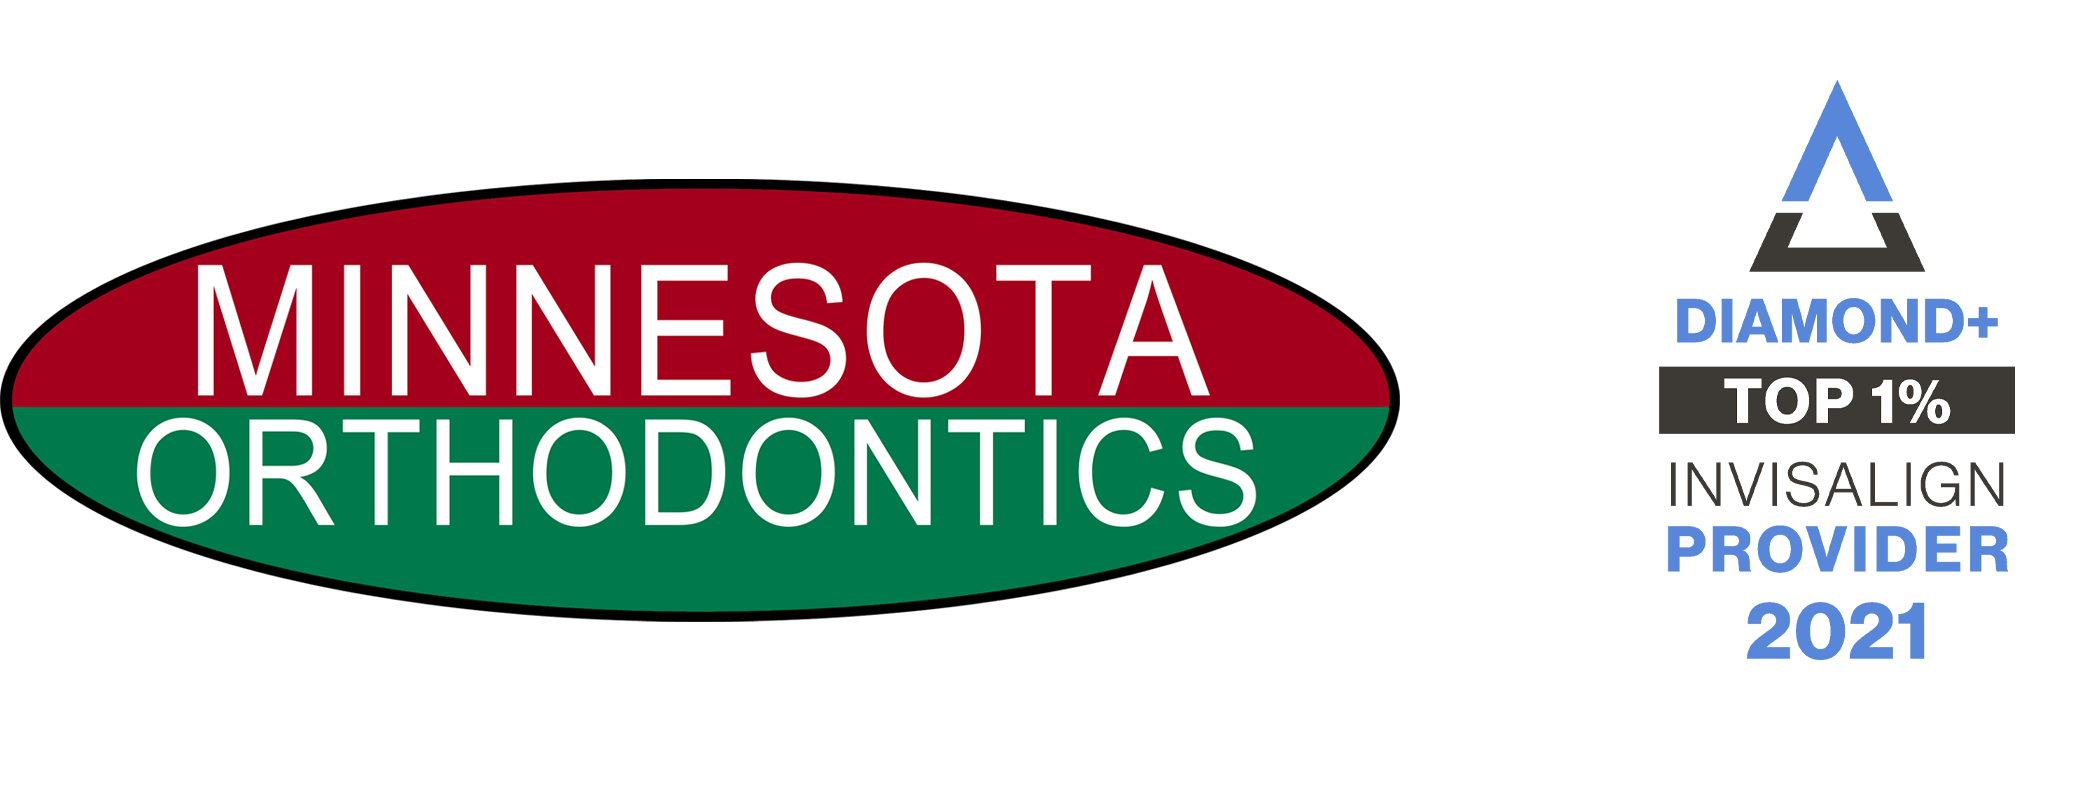 Minnesota Orthodontics